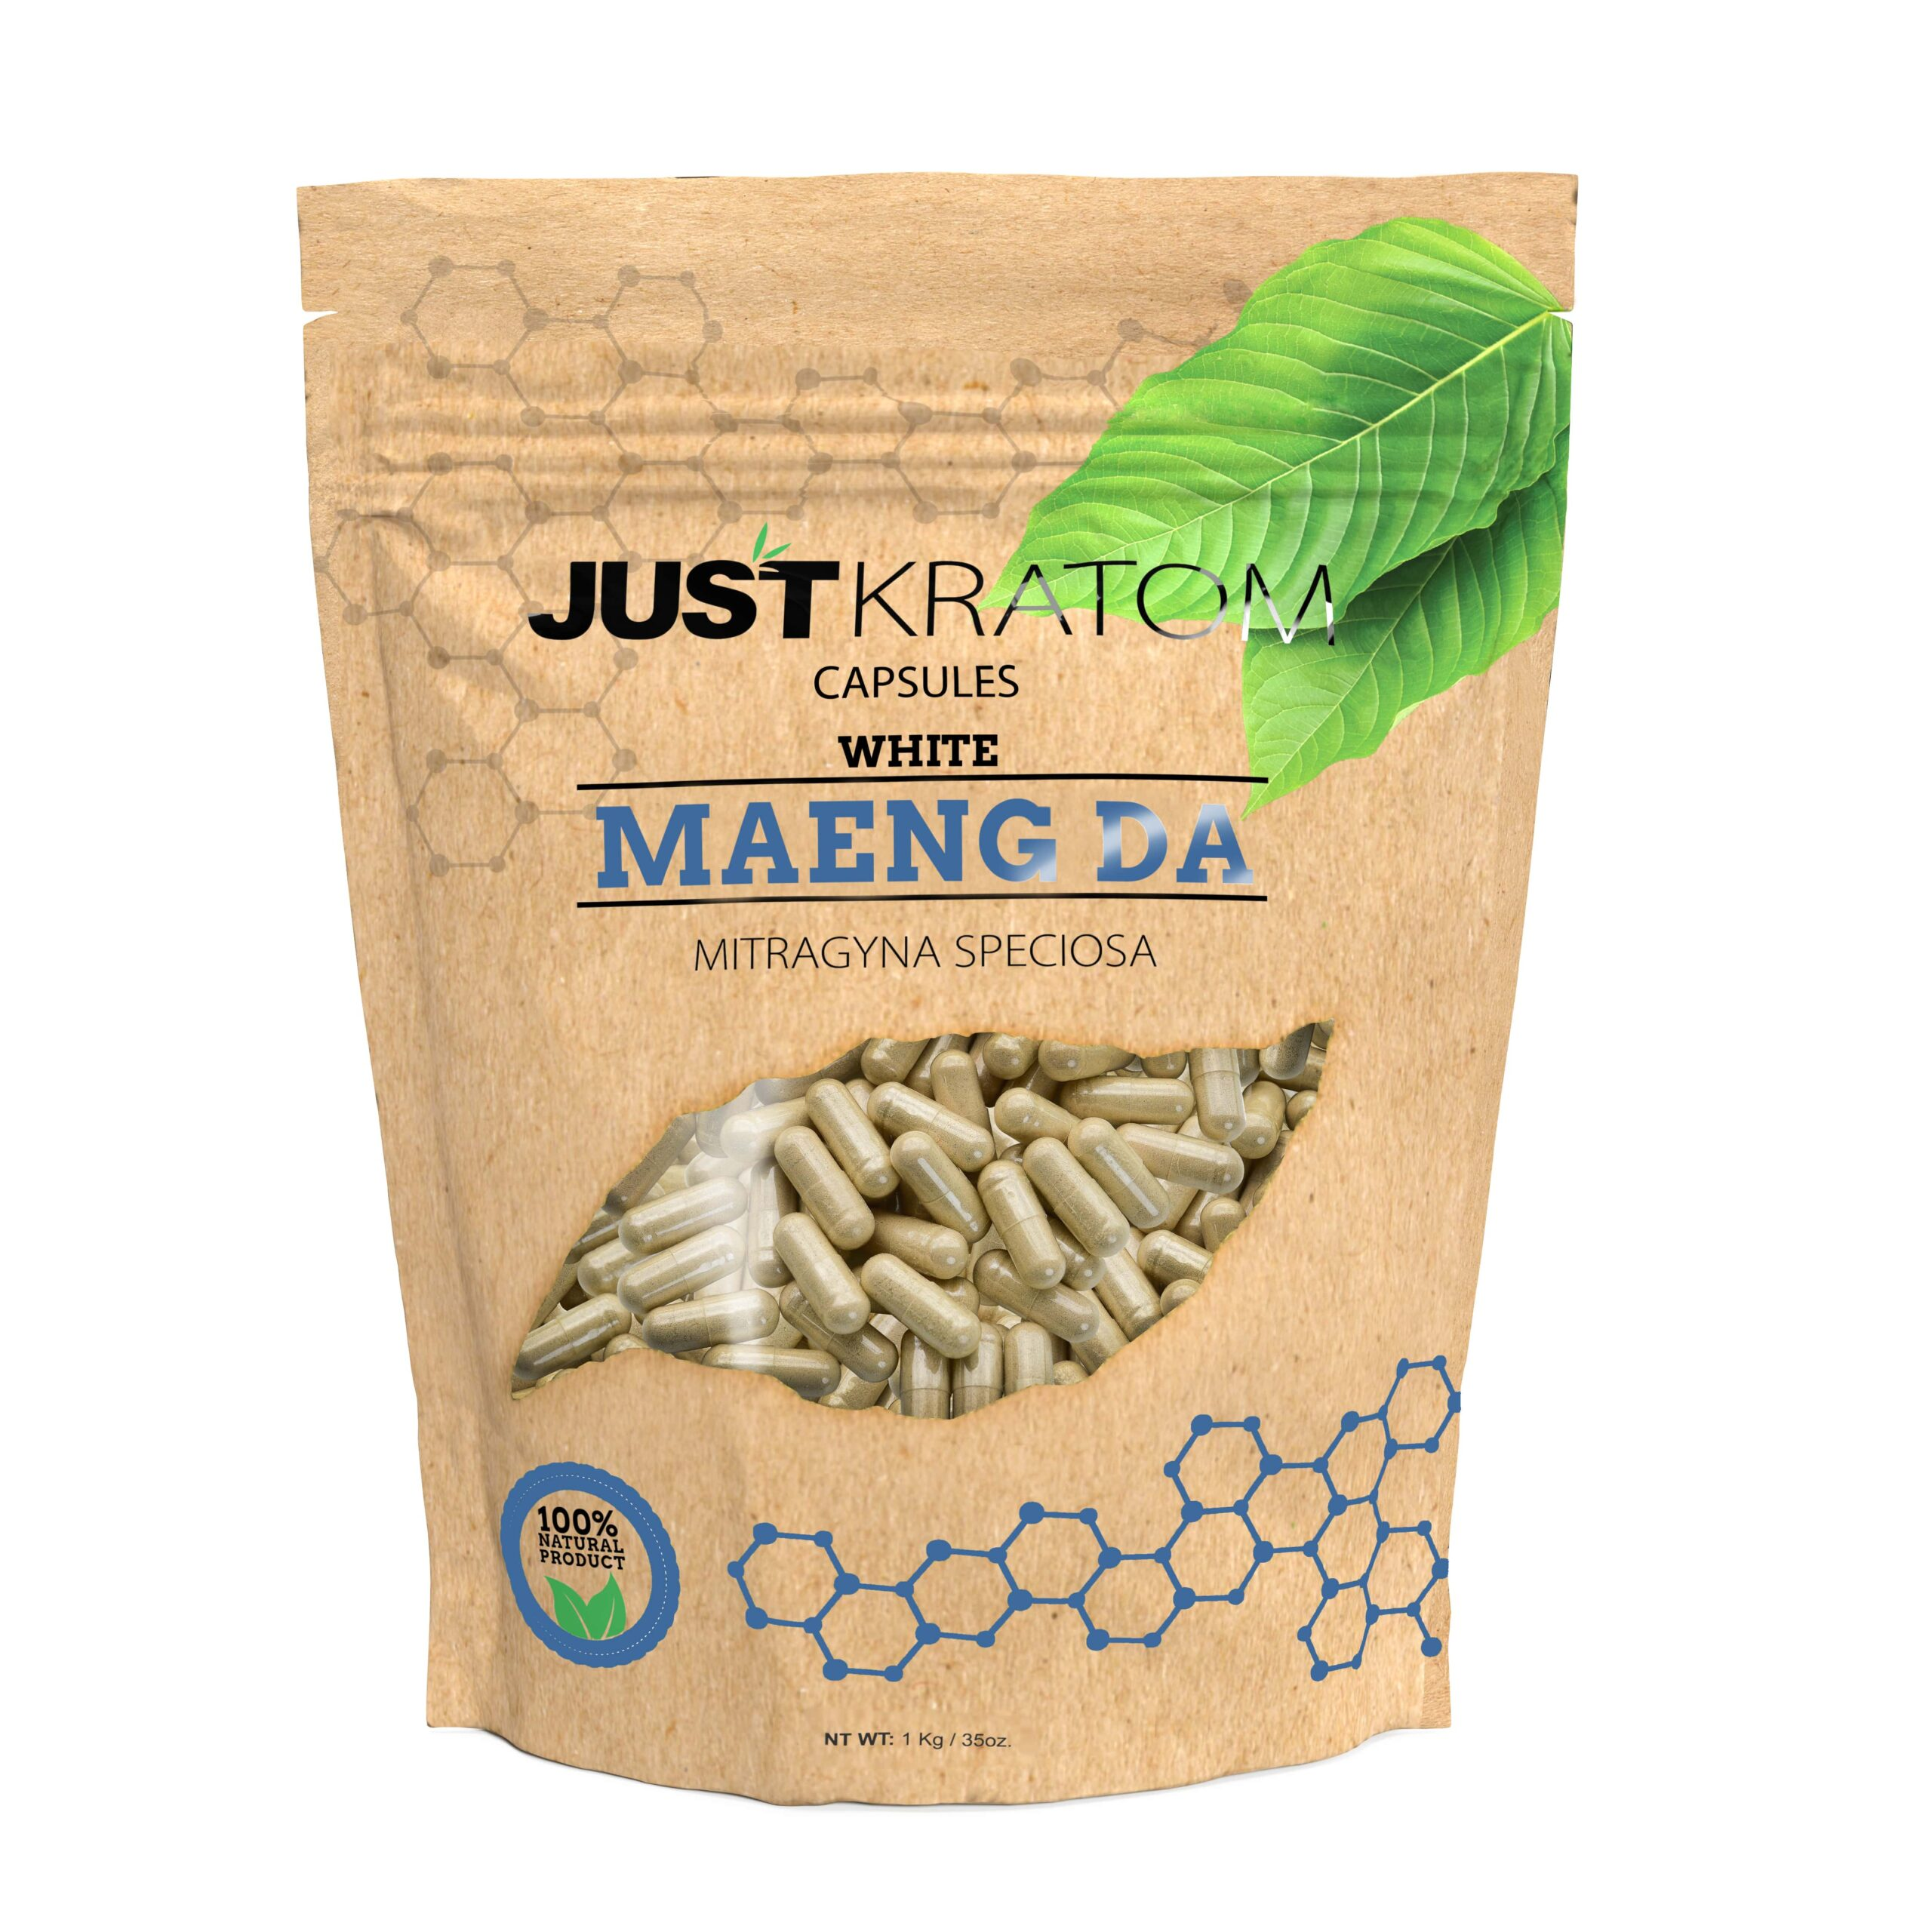 Where Can I Order Kratom?